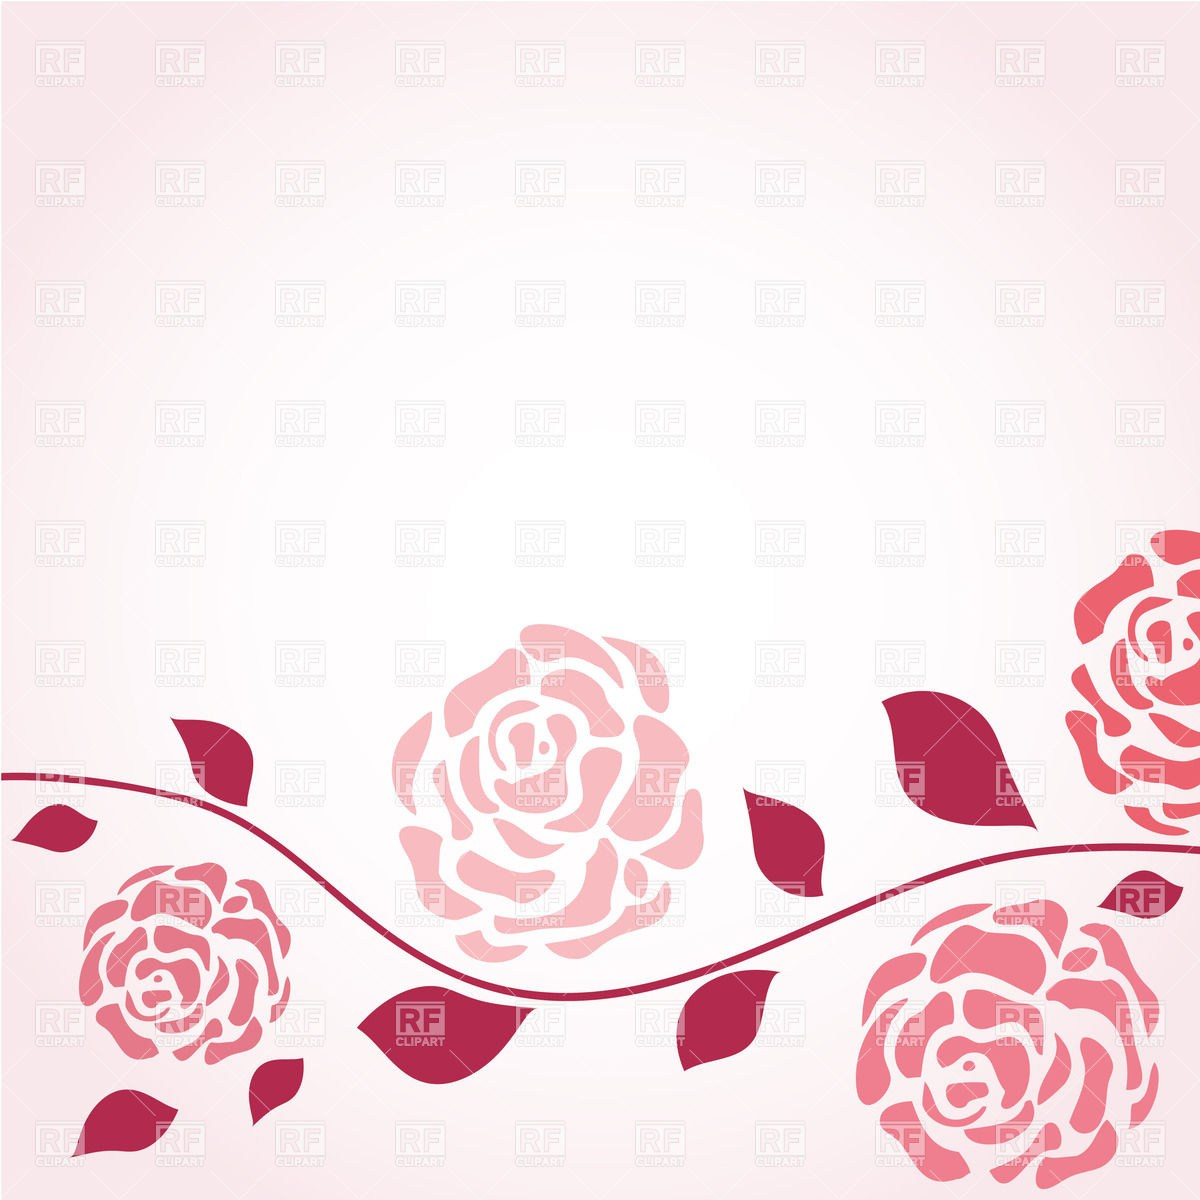 Rose background clipart » Clipart Portal.